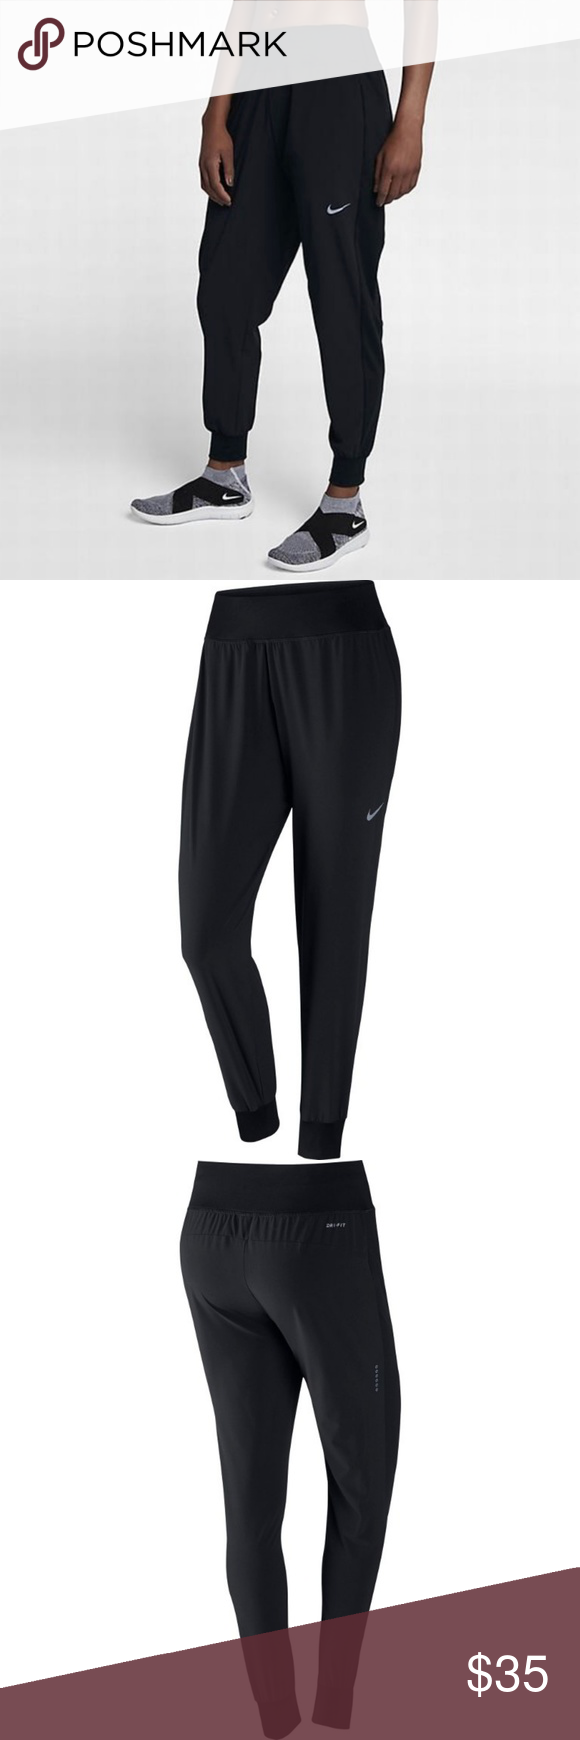 bace609bc18b2 Nike Power Flex Essential Slim Fit Pants New With Tags 100% Authentic,  Guaranteed!